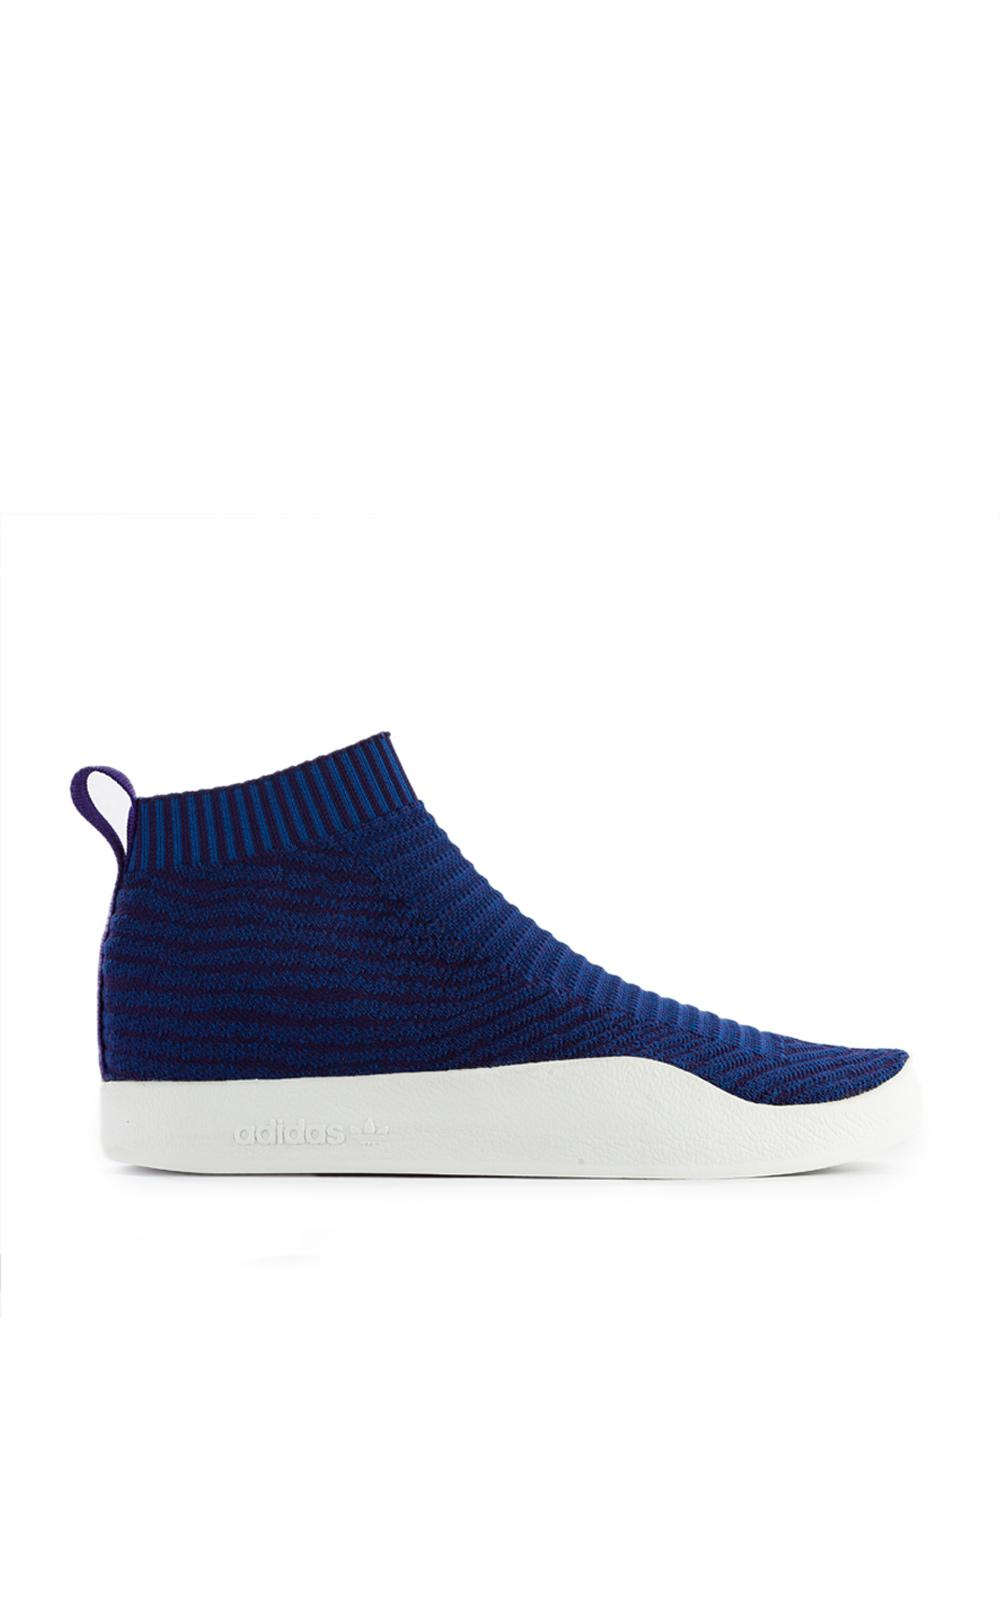 hot sale online 40182 a8846 Lyst - adidas Originals Adilette Pk Sock Blue in Blue for Me